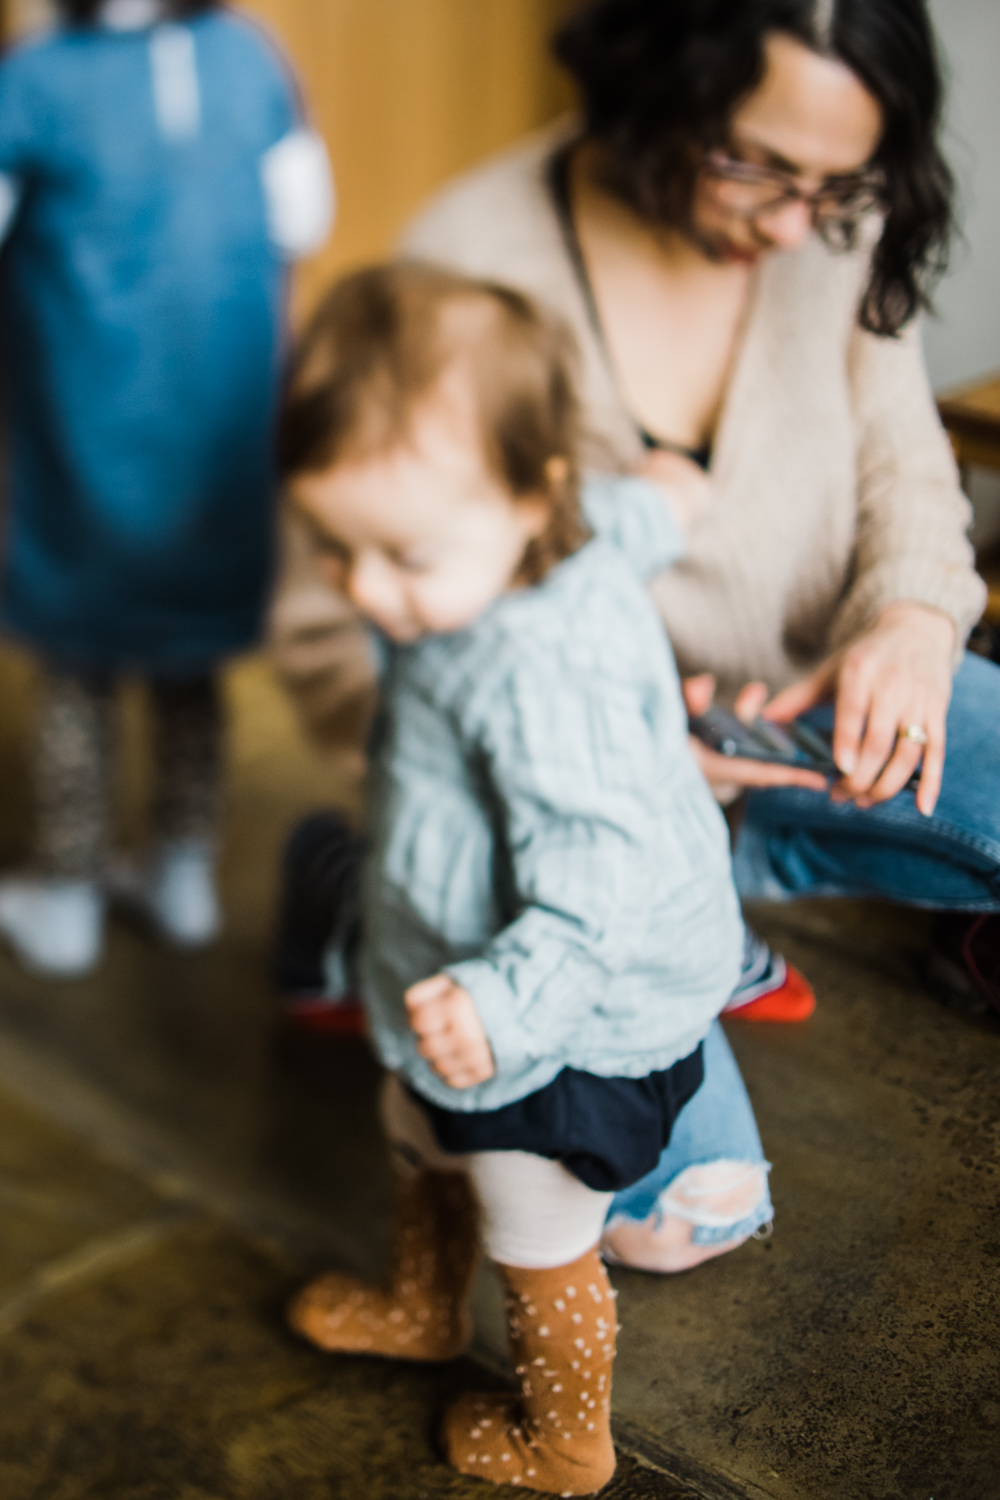 Copy of A toddler reaches for her mum's jumper